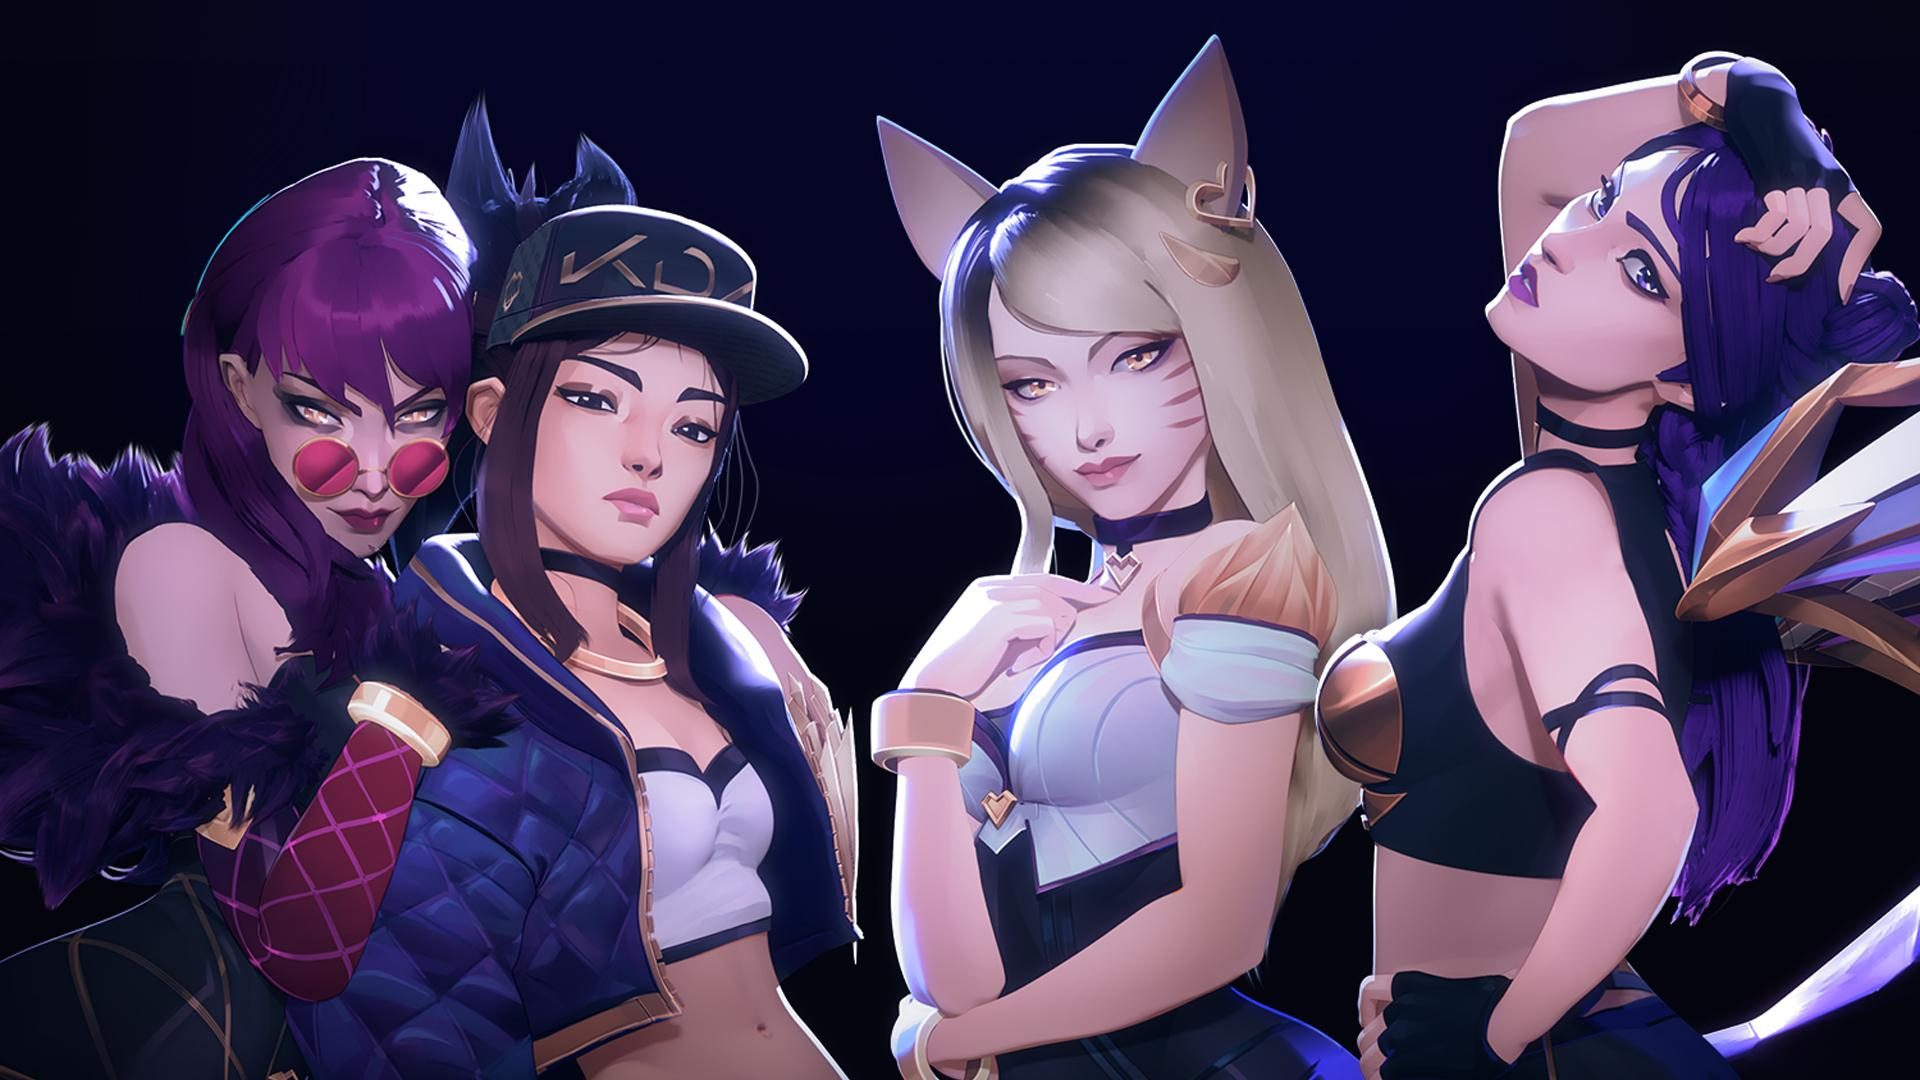 Free Download Kda Stream Overlay And More League Of Legends